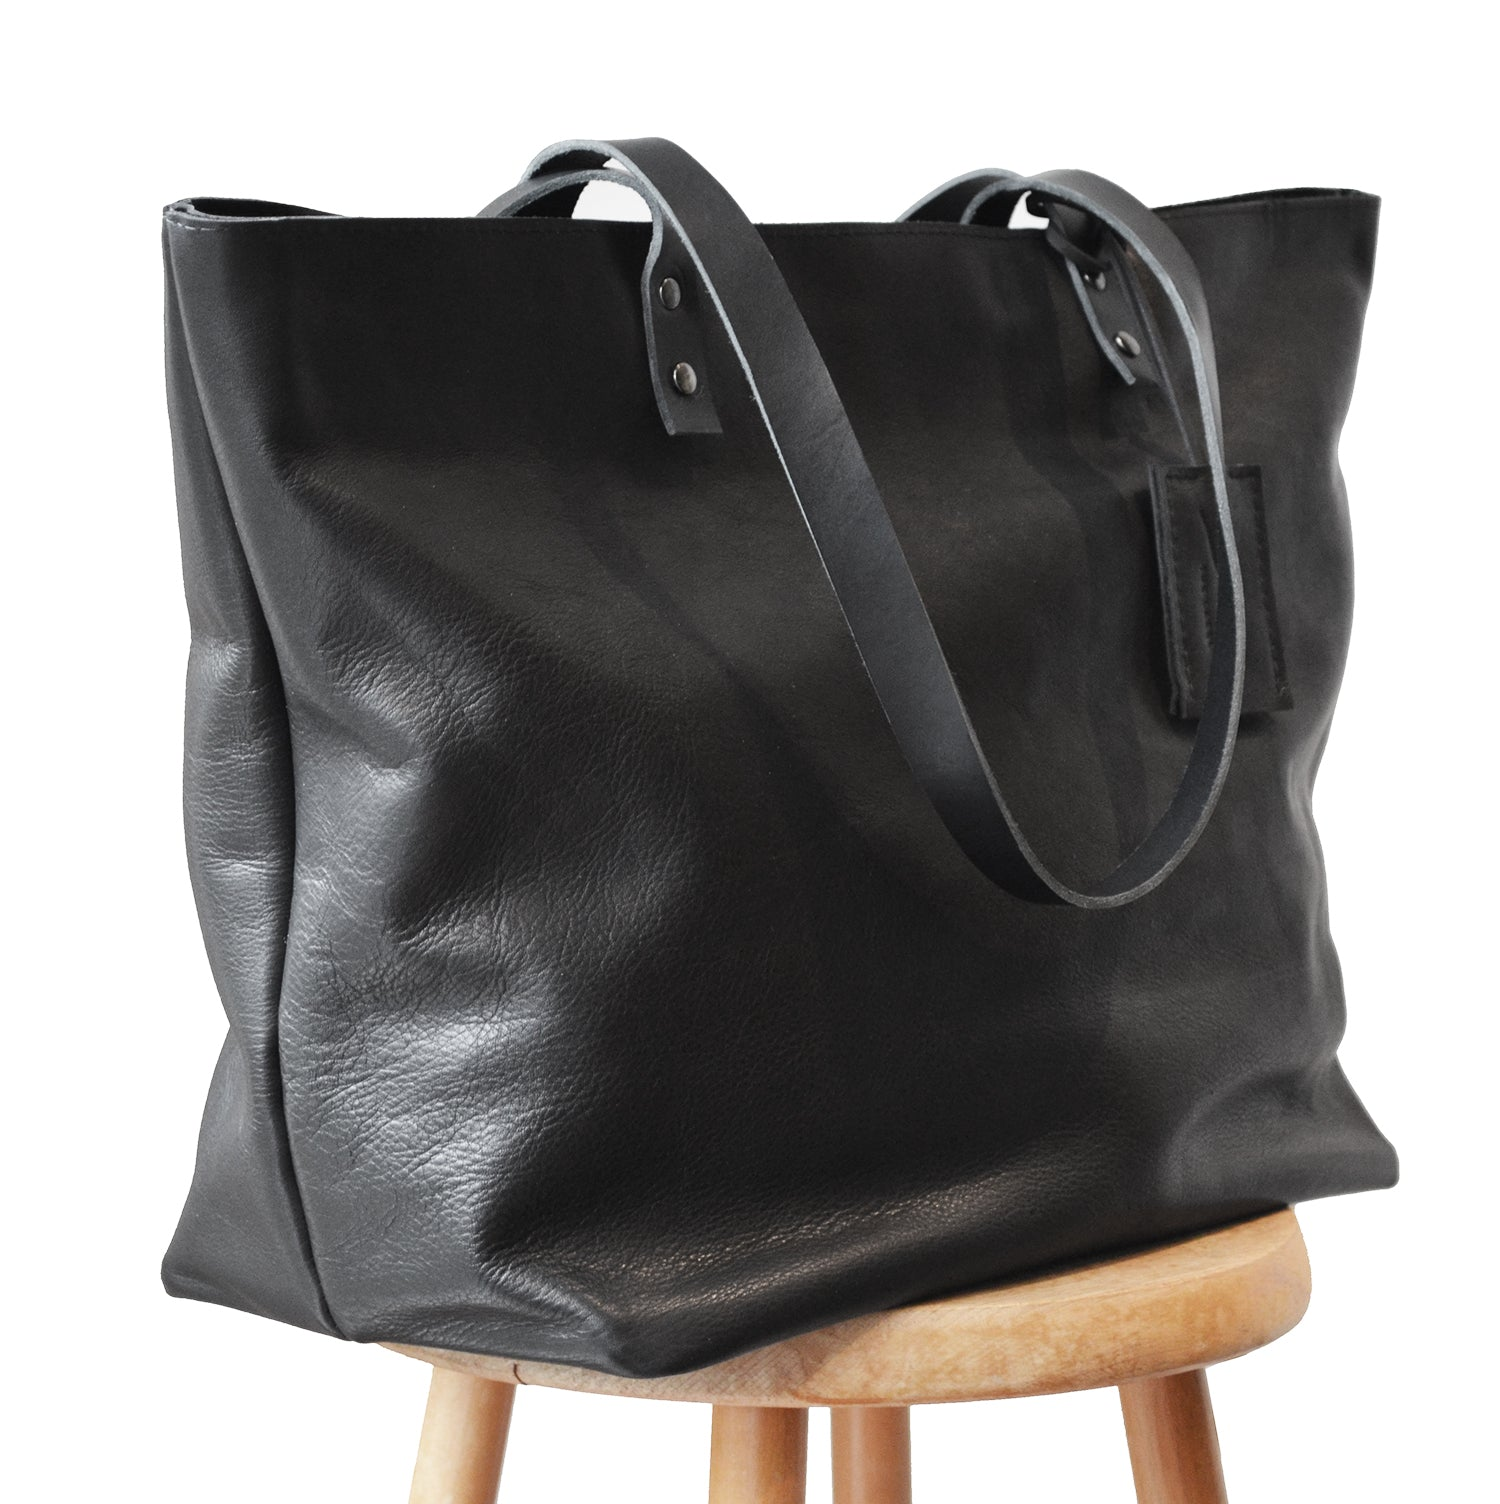 Black Marrone shopper